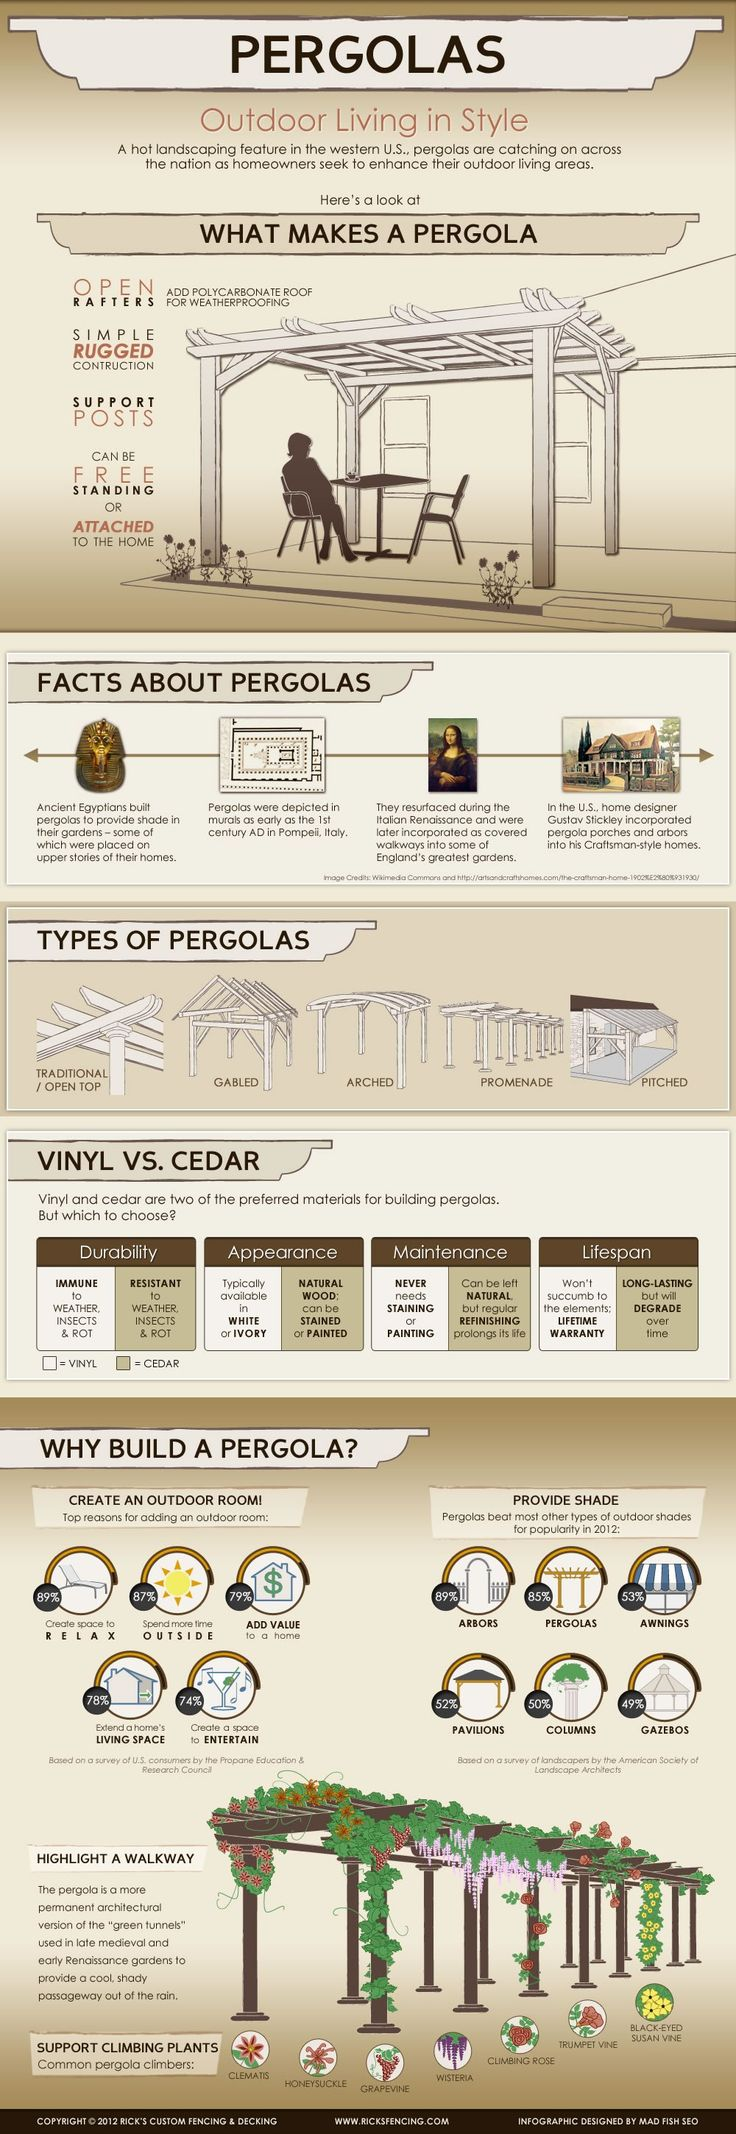 Infographic: Pergolas - Outdoor Living in Style